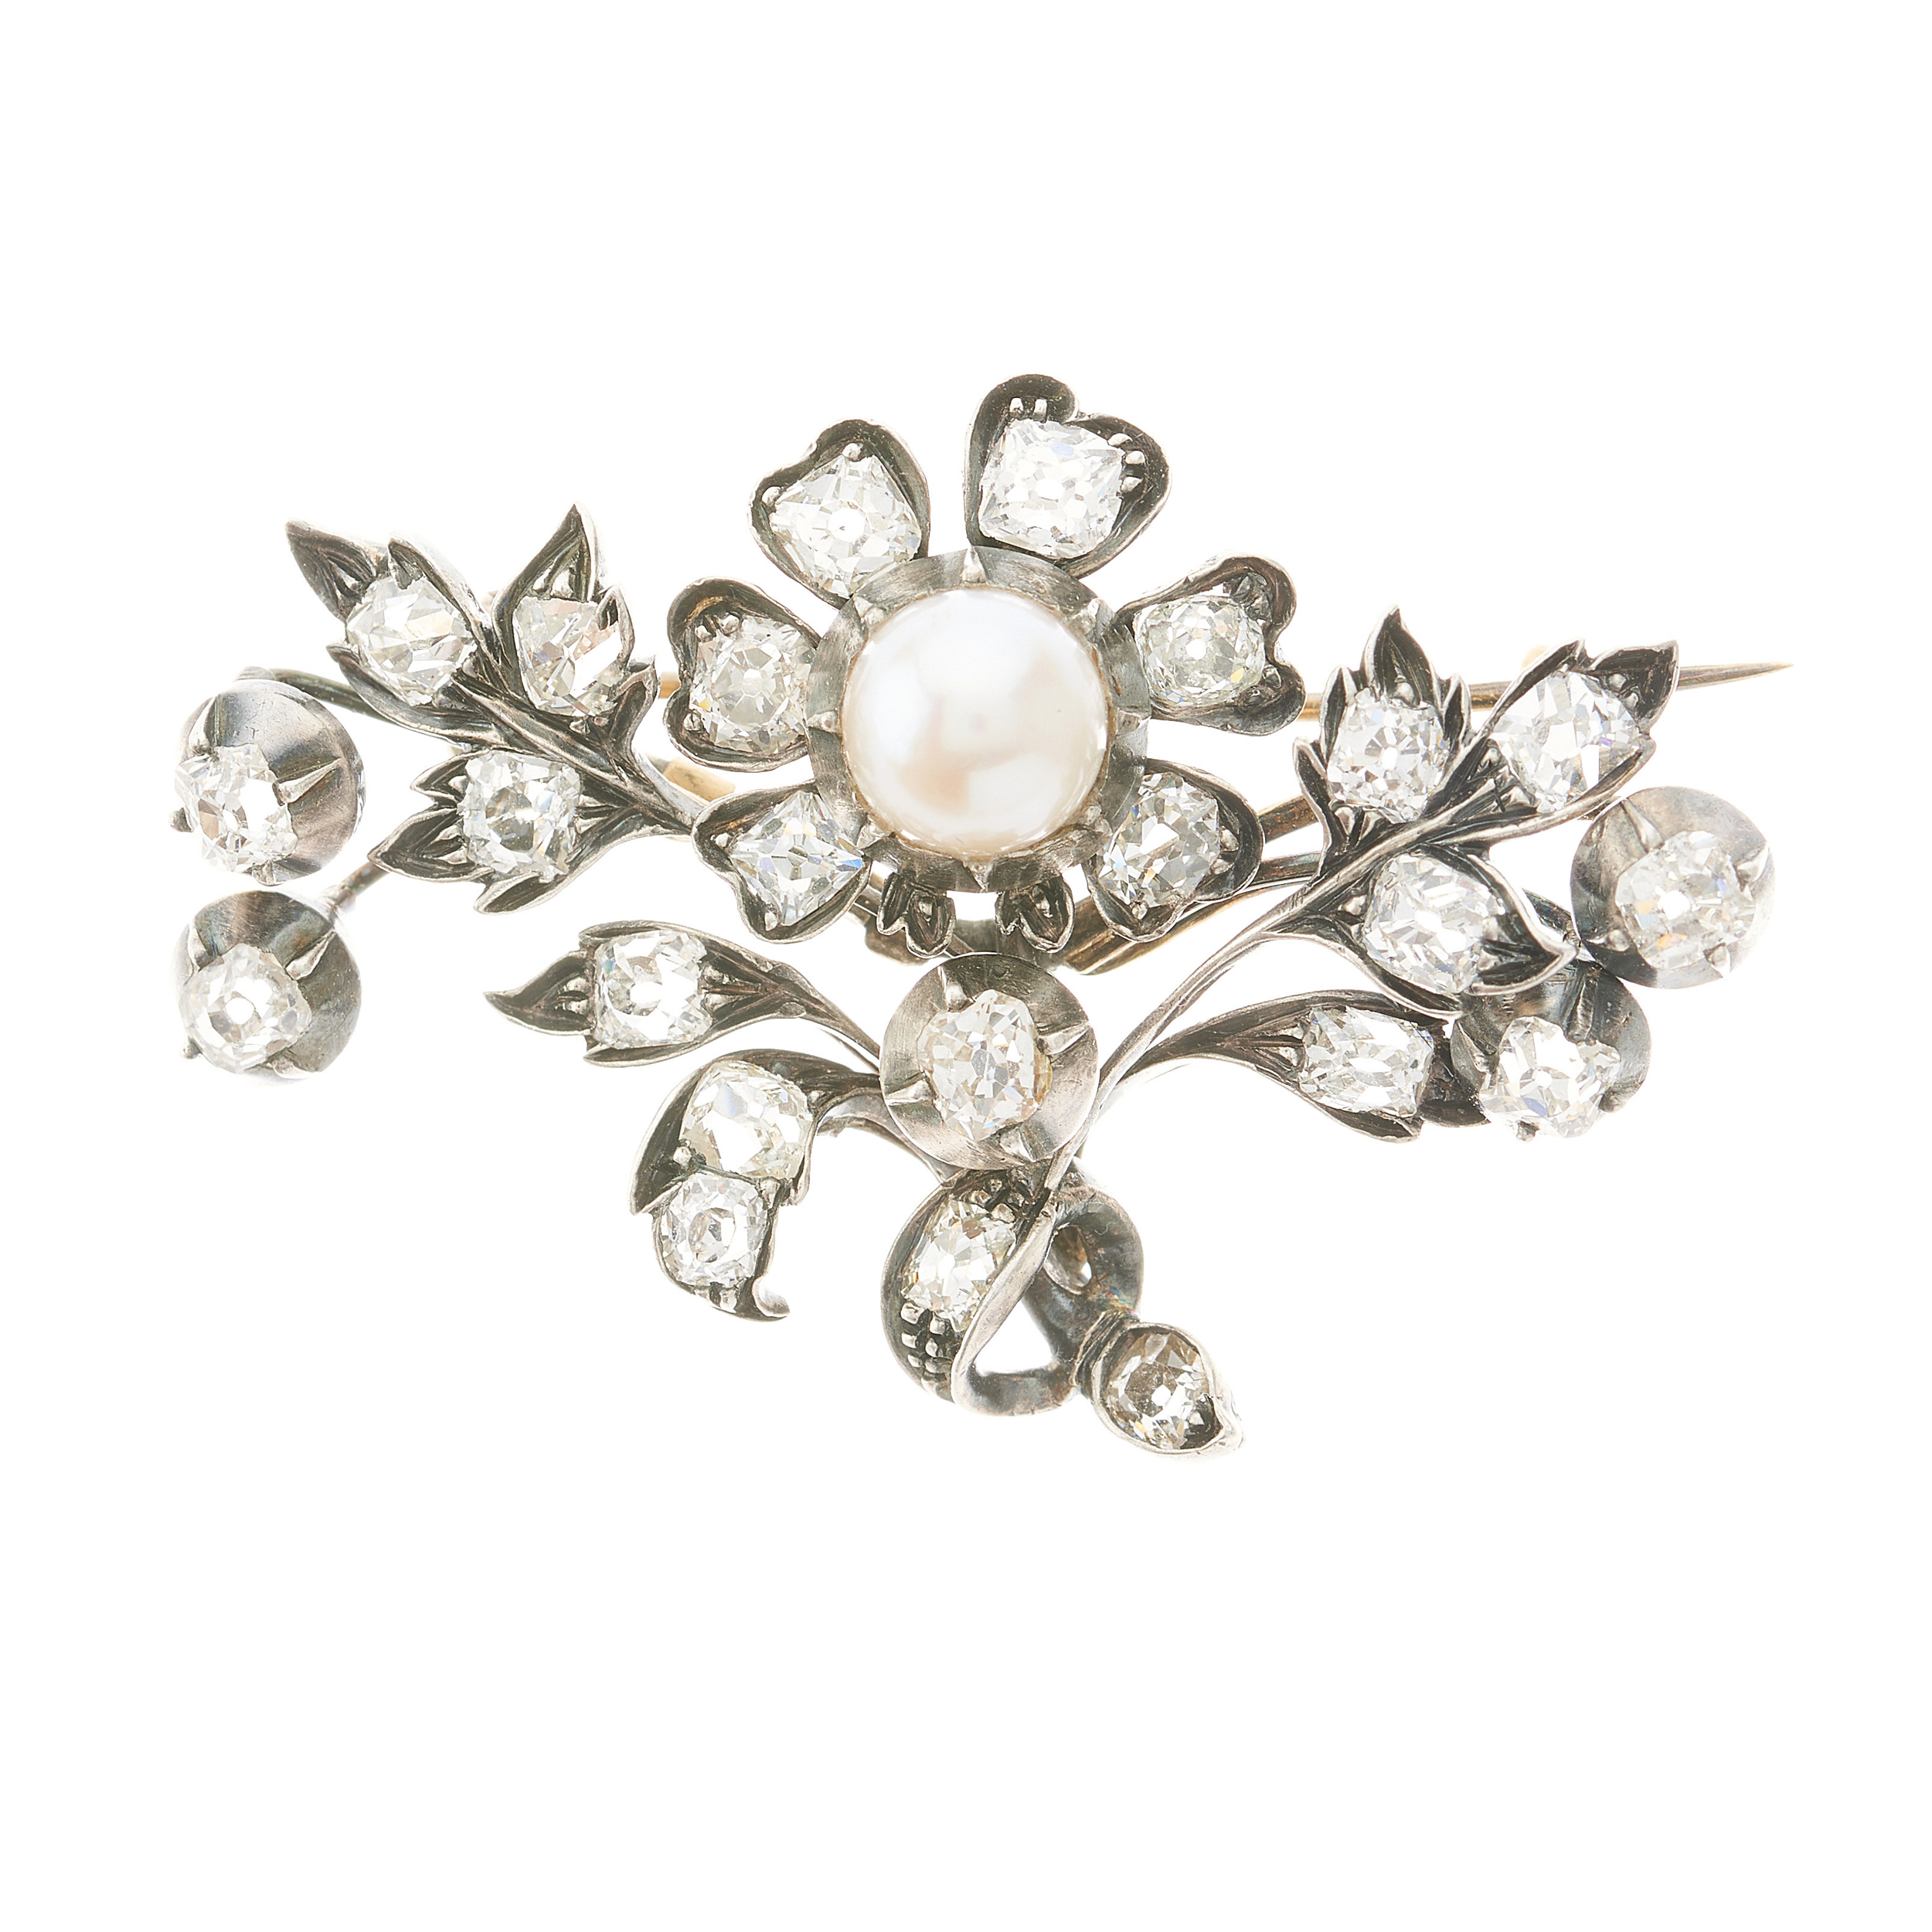 A 19th century French silver and gold, pearl and old-cut diamond floral brooch